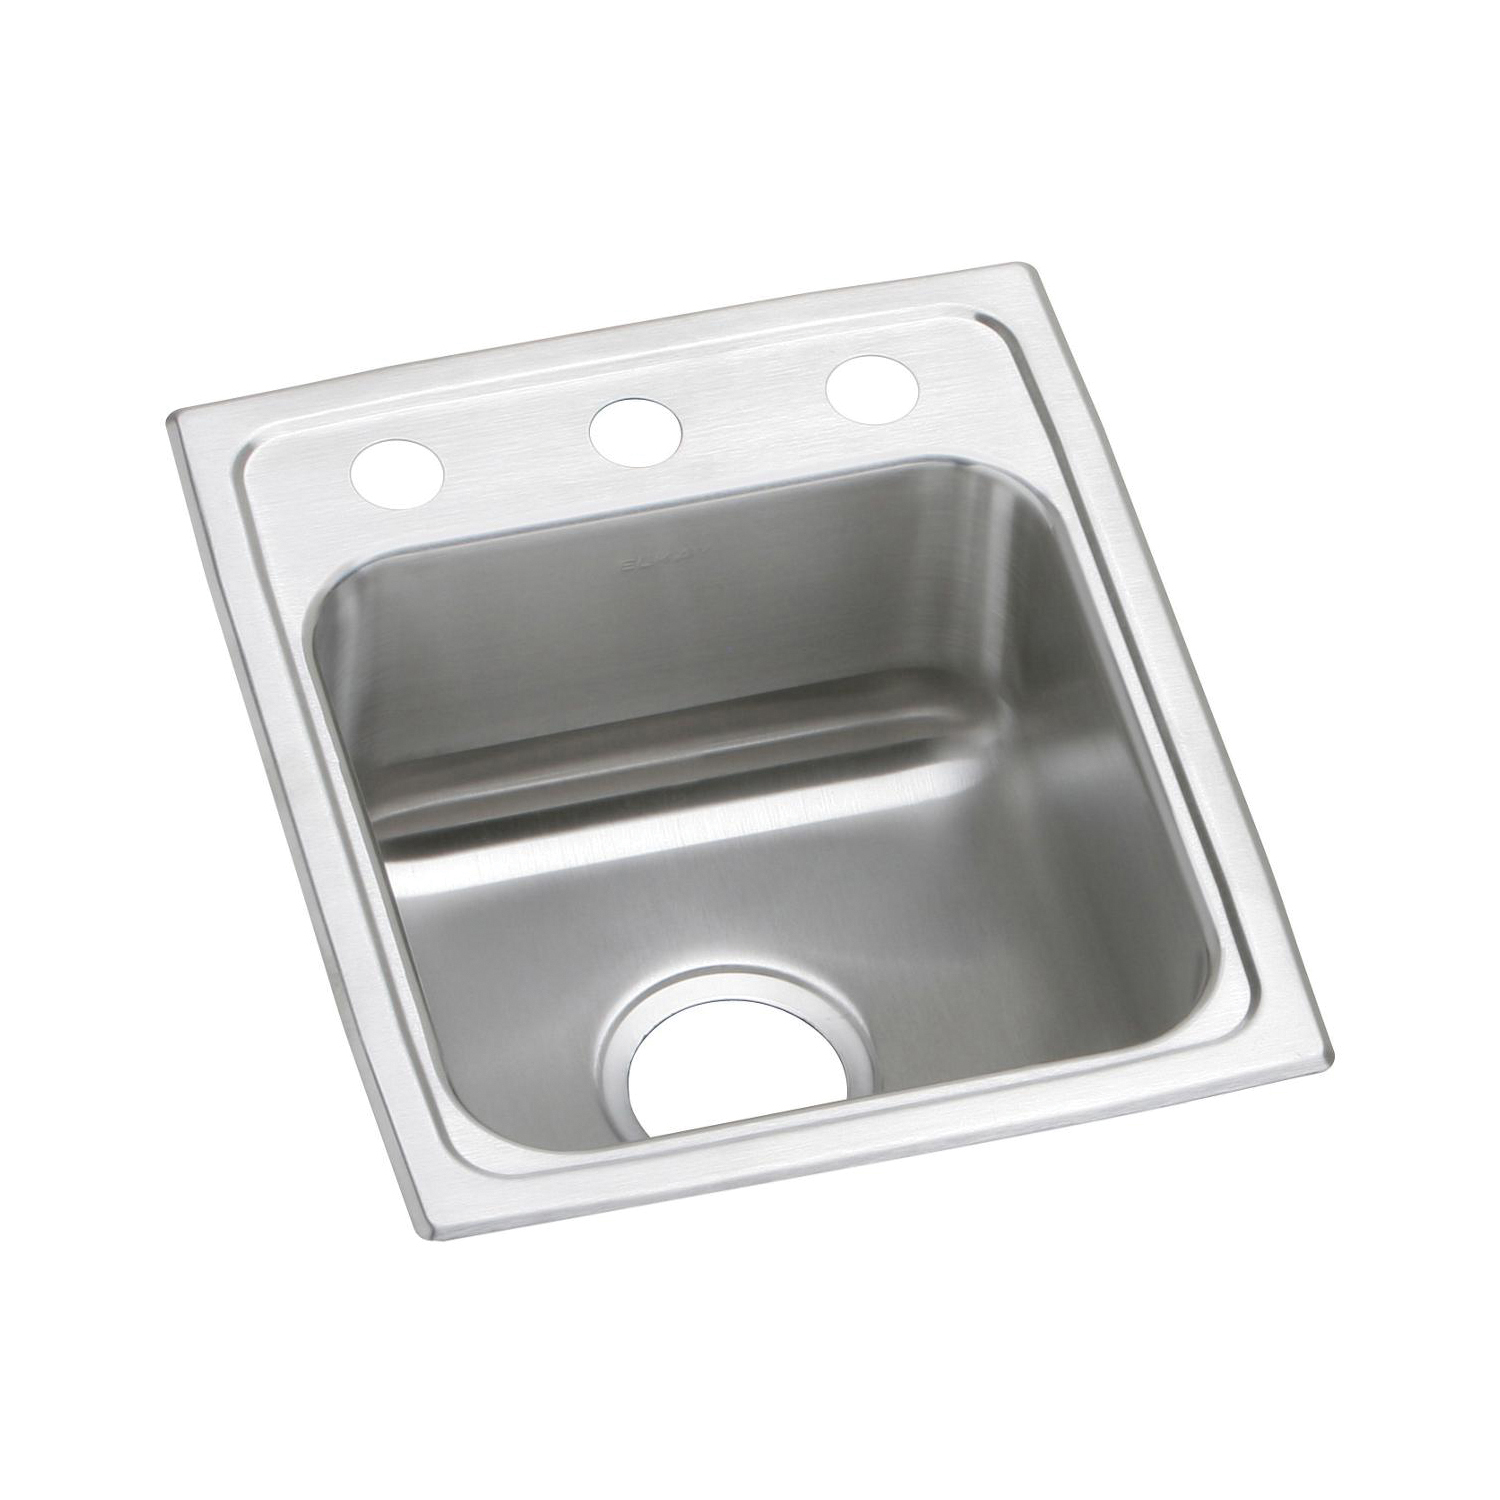 Elkay® PSR15173 Pacemaker Bar Sink, Rectangular, 3 Faucet Holes, 15 in W x 17-1/2 in D x 7-1/8 in H, Top Mount, Stainless Steel, Brilliant Satin, Domestic